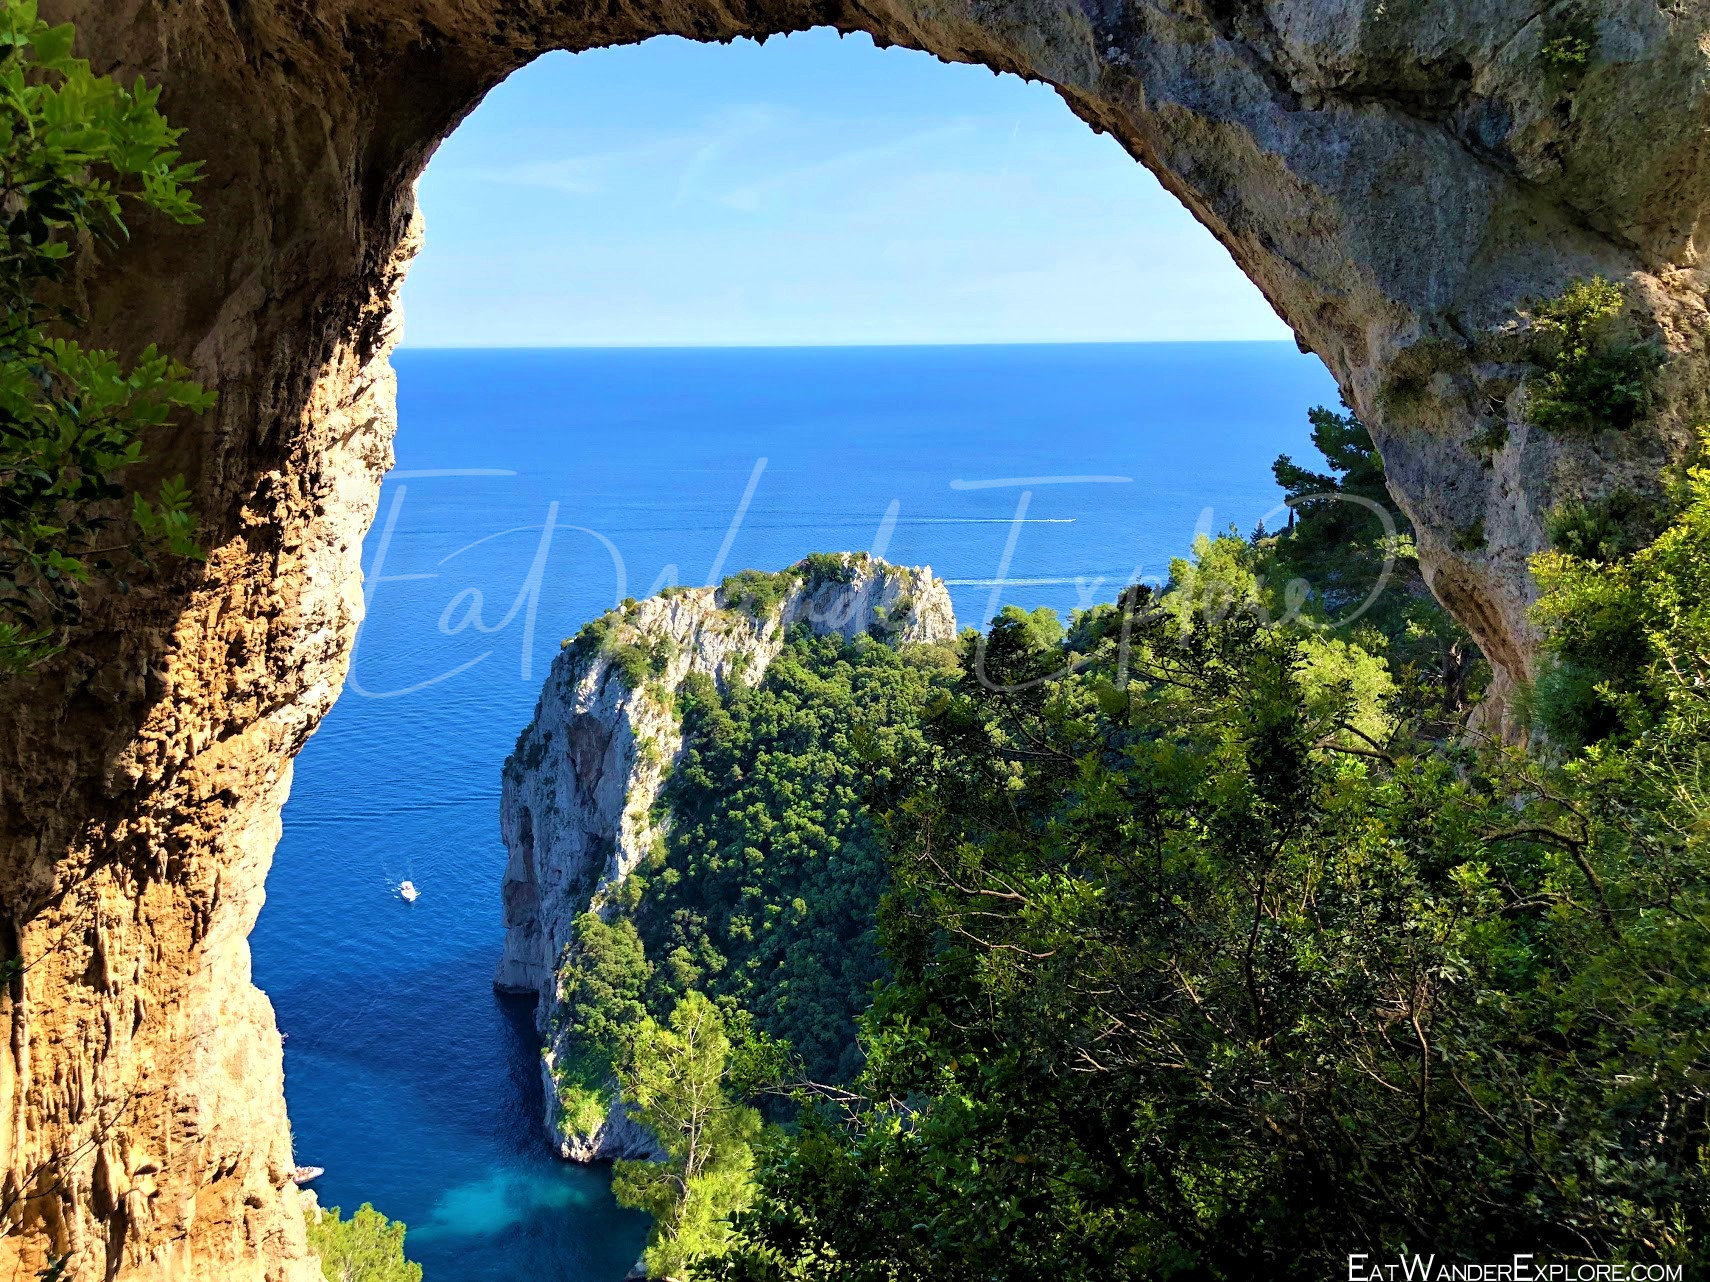 Looking through the natural Arch on Capri Italy